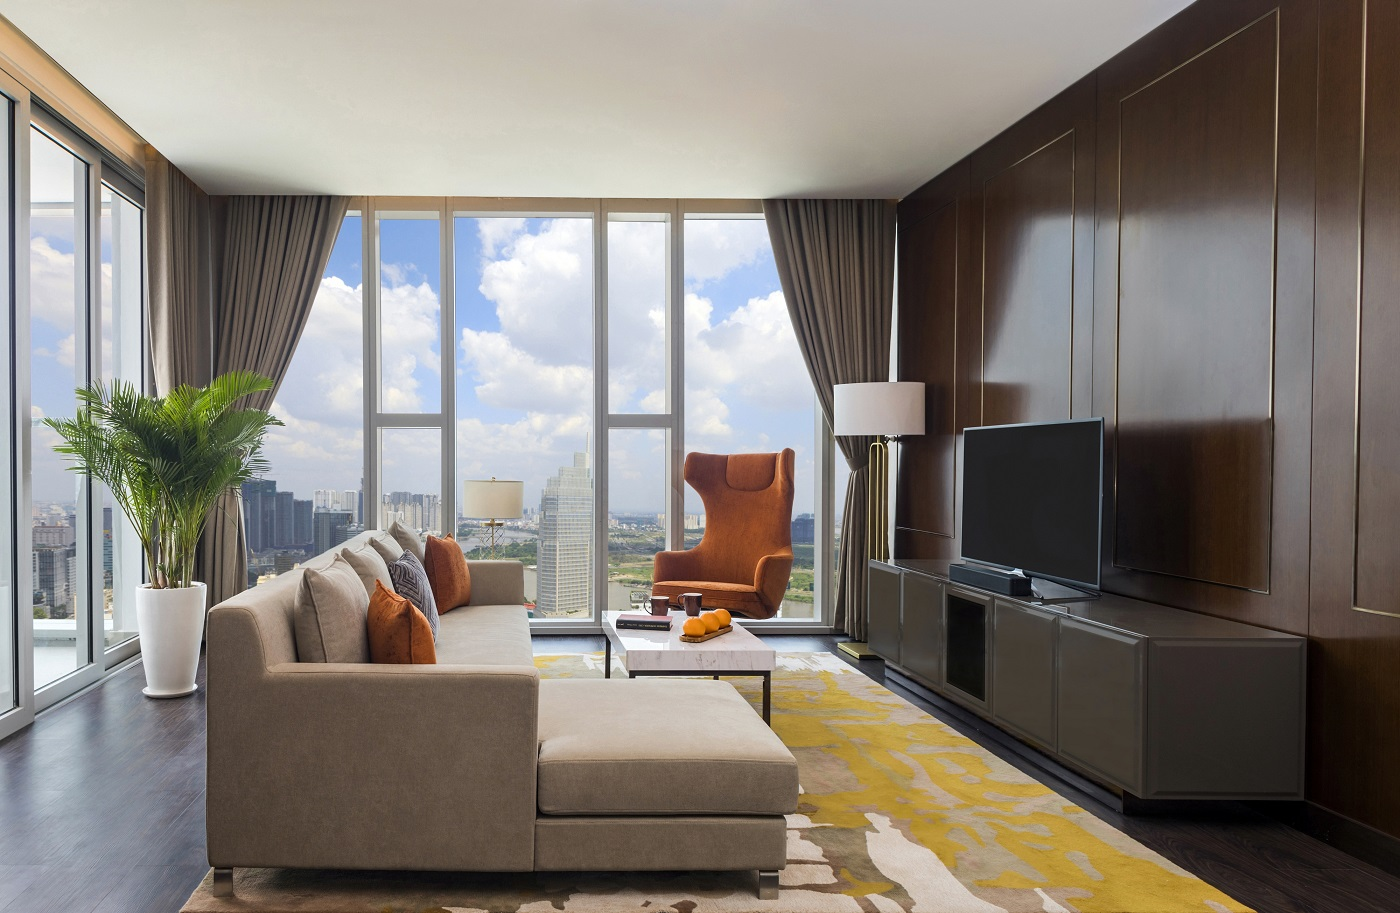 Living room of a Grand Three Bedroom suite at Sedona Suites HCMC